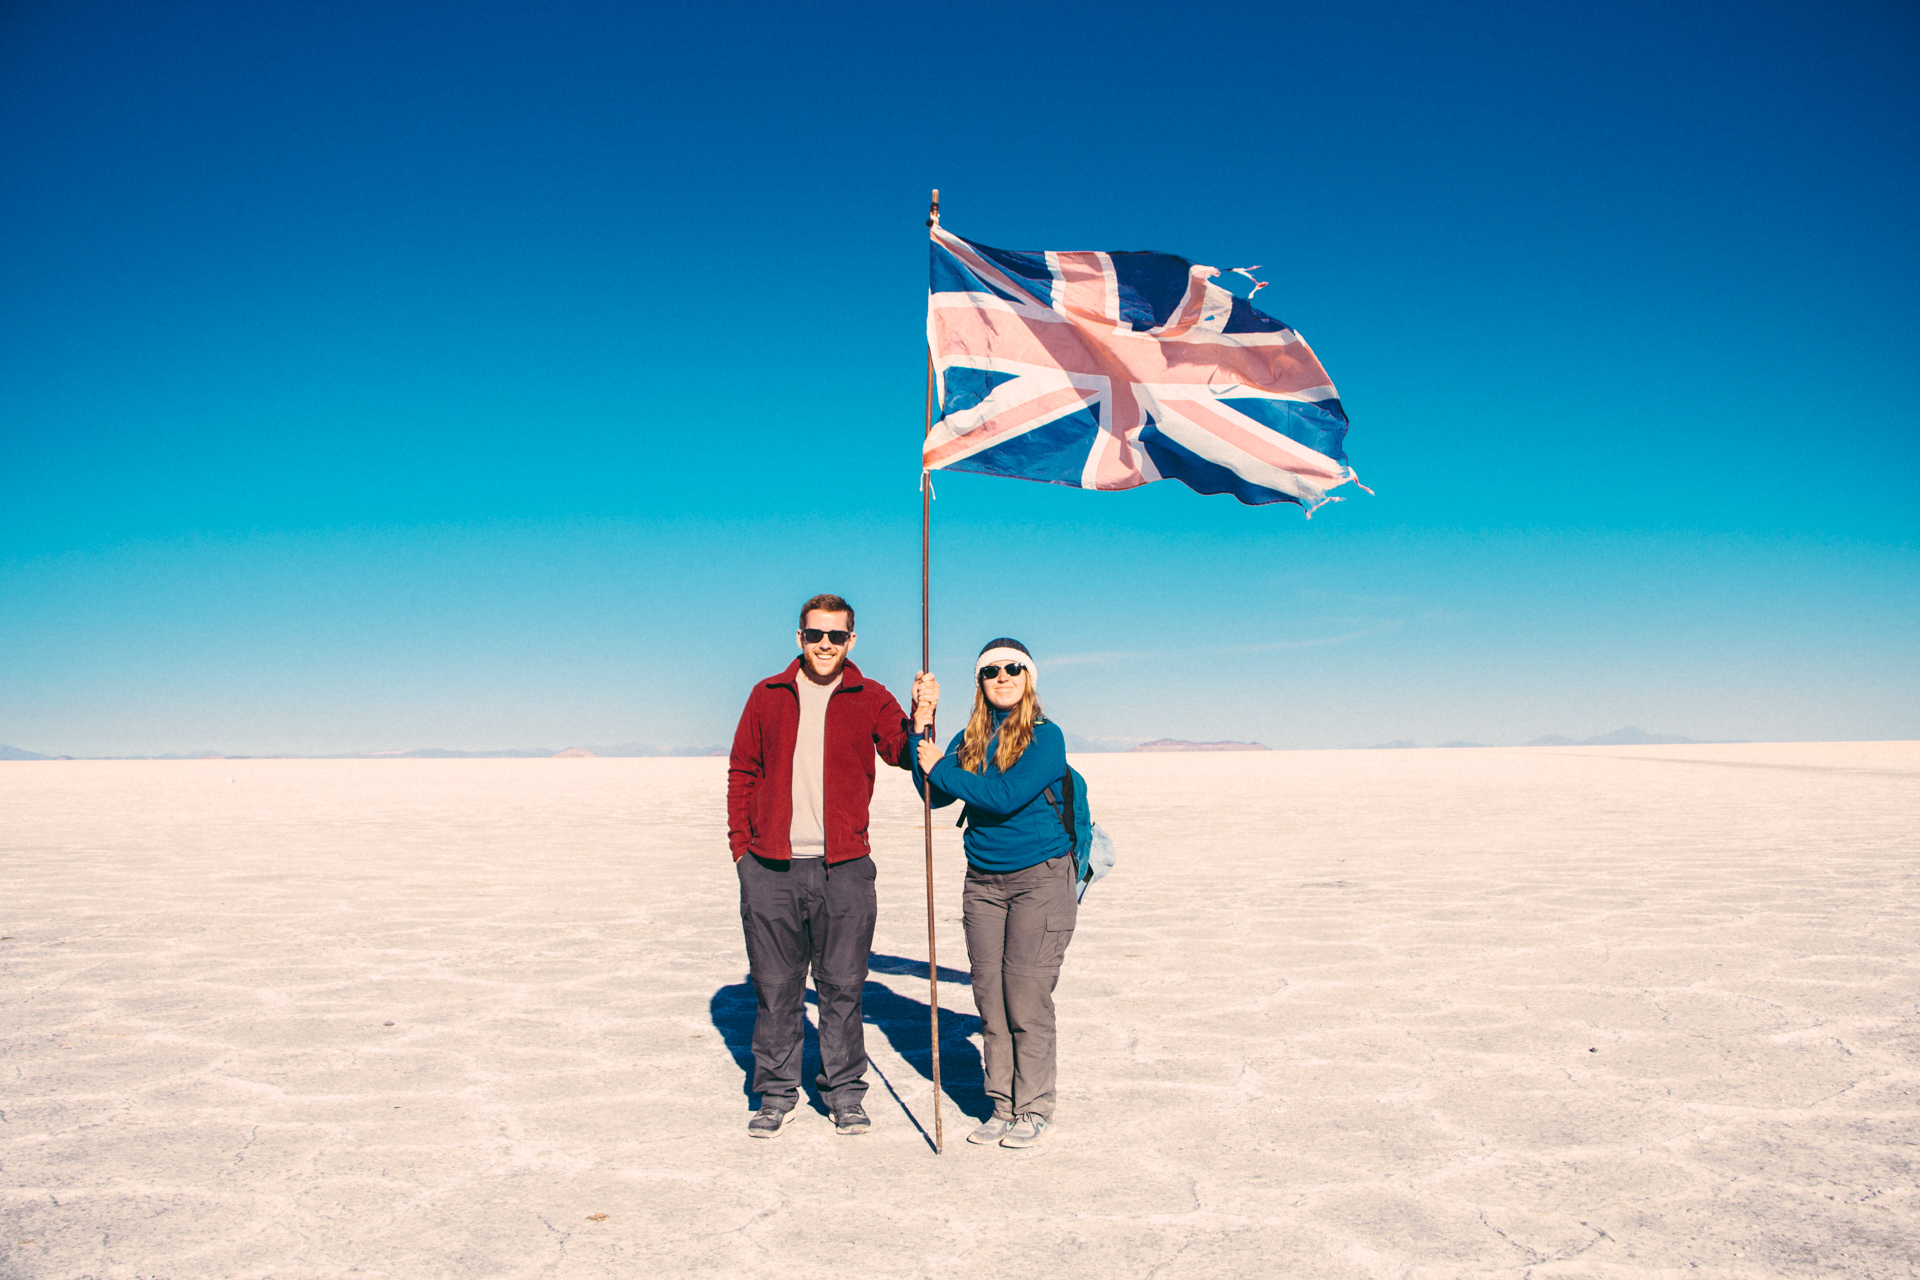 Alis and Alex U.K Flag Salt Flats